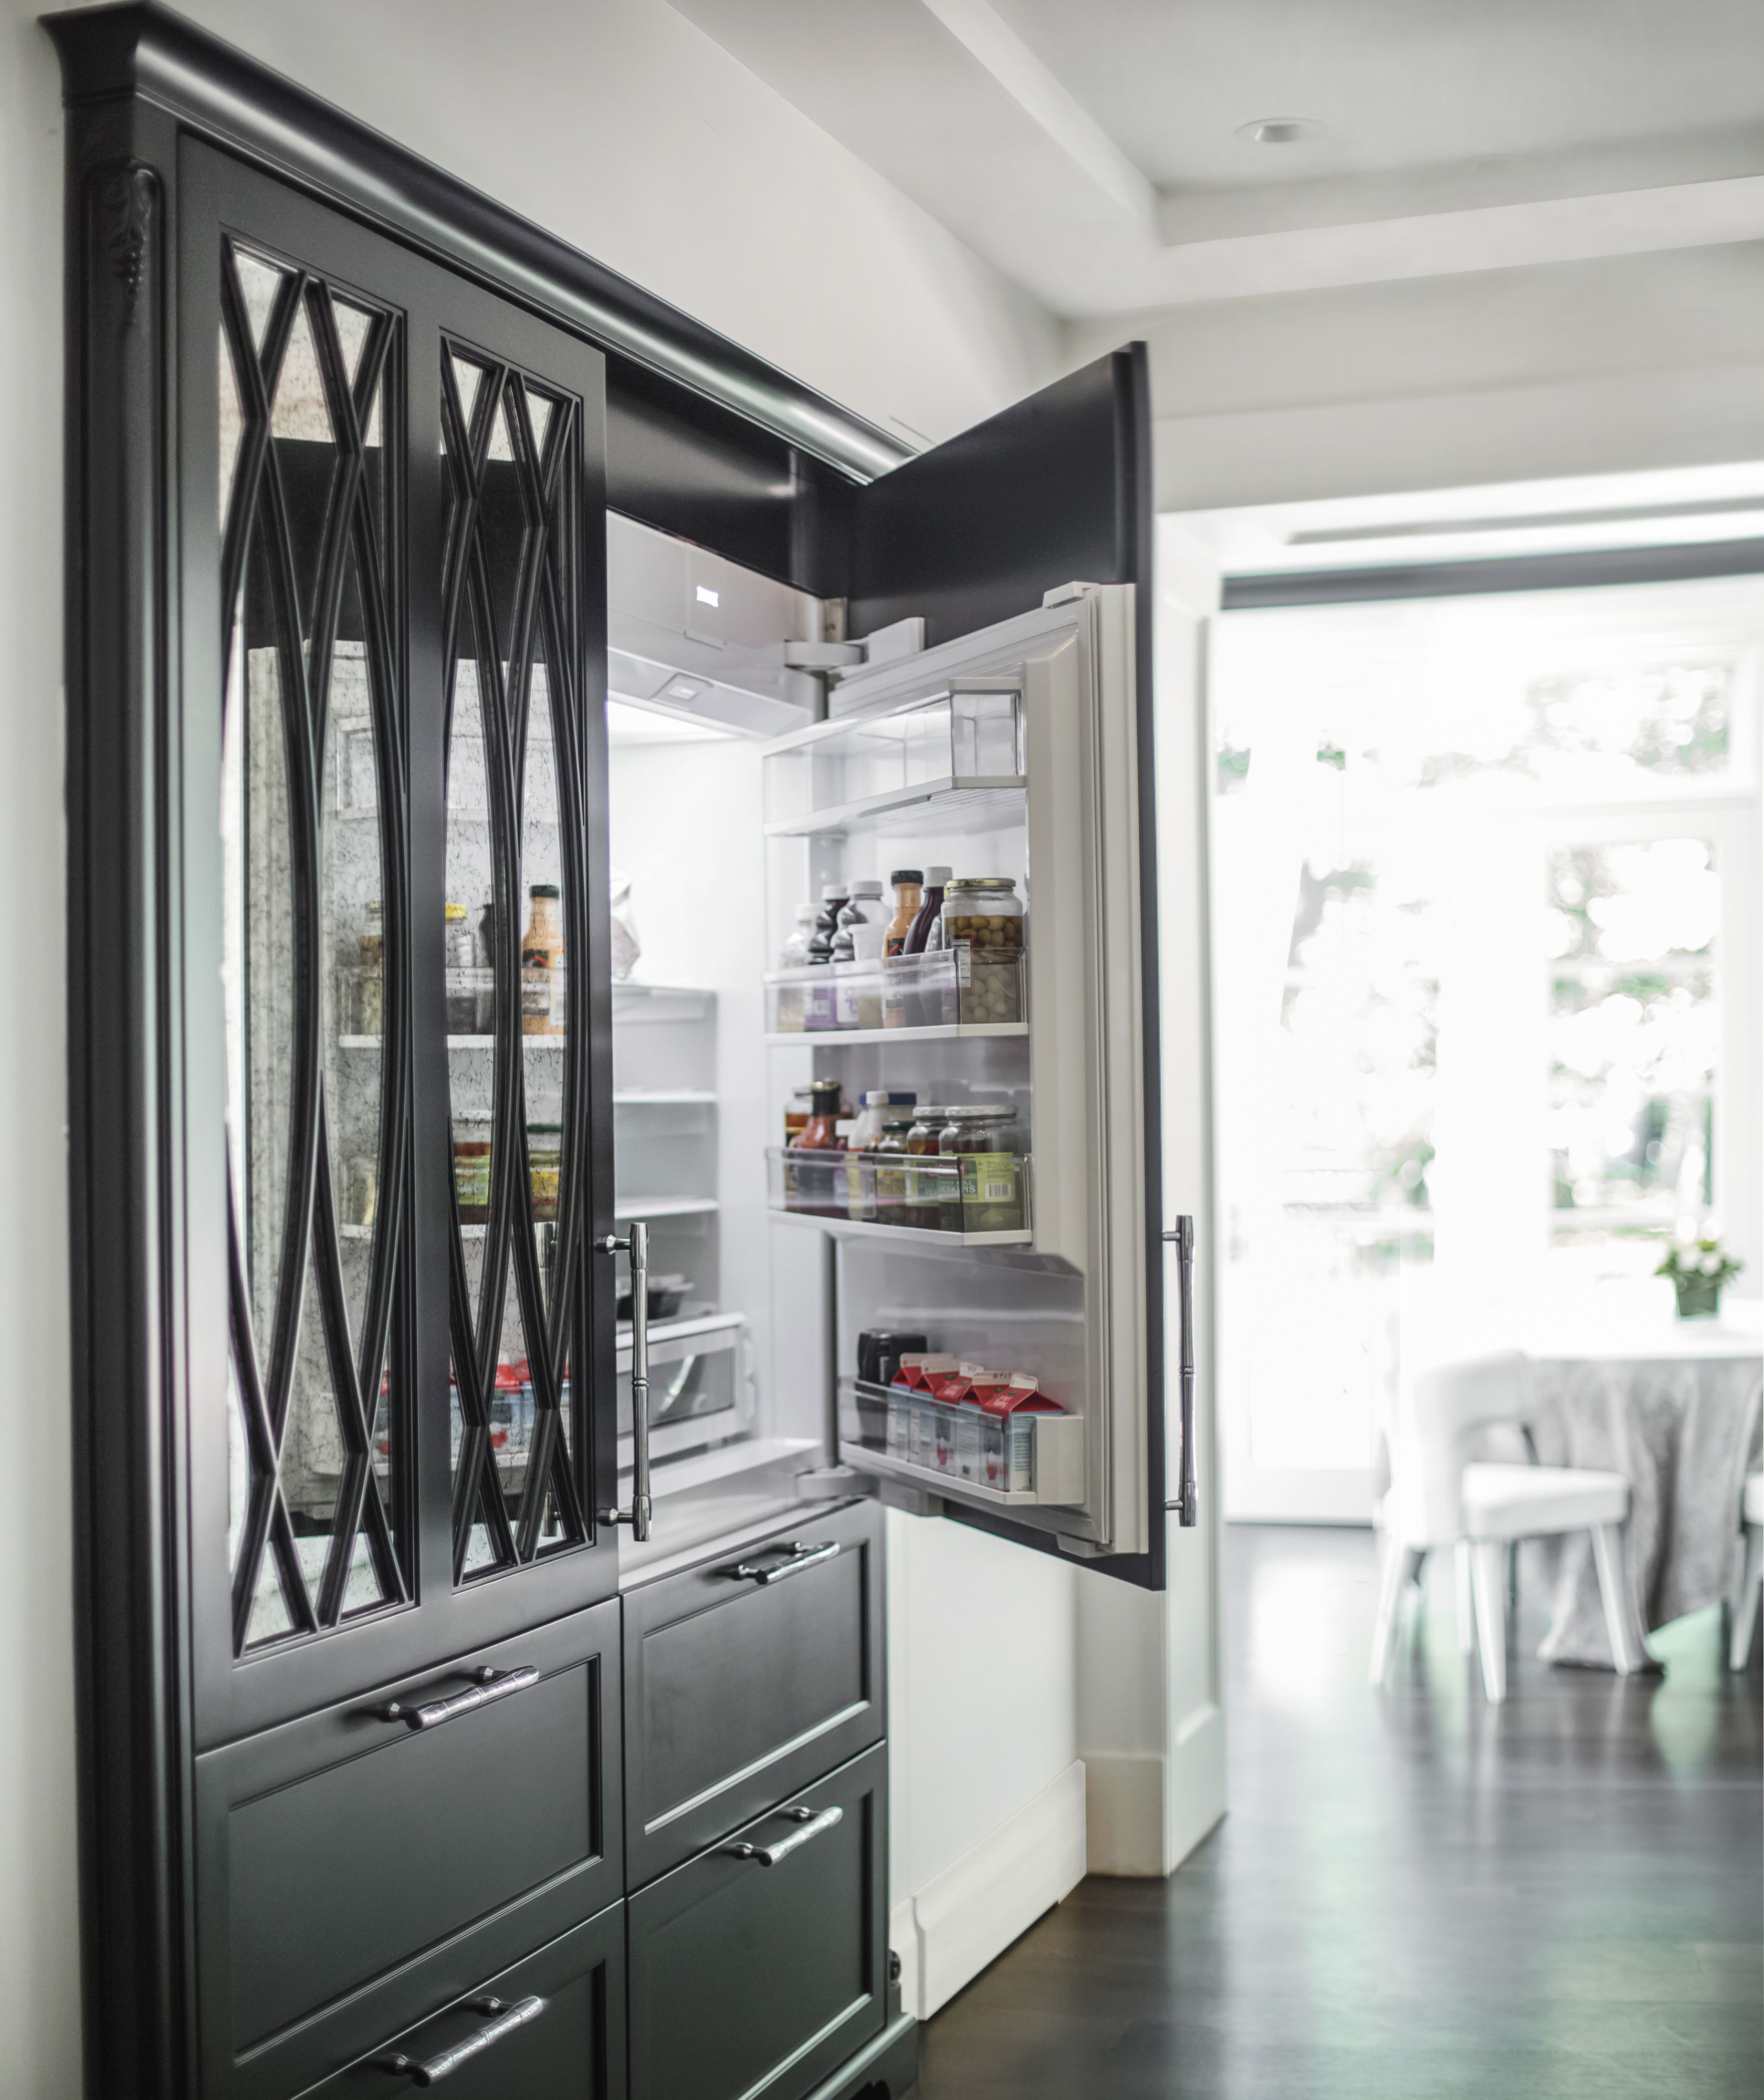 58 Best Images About Woodmode Cabinetry On Pinterest: Black Kitchen With Two Subzero Refrigerators Paneled To